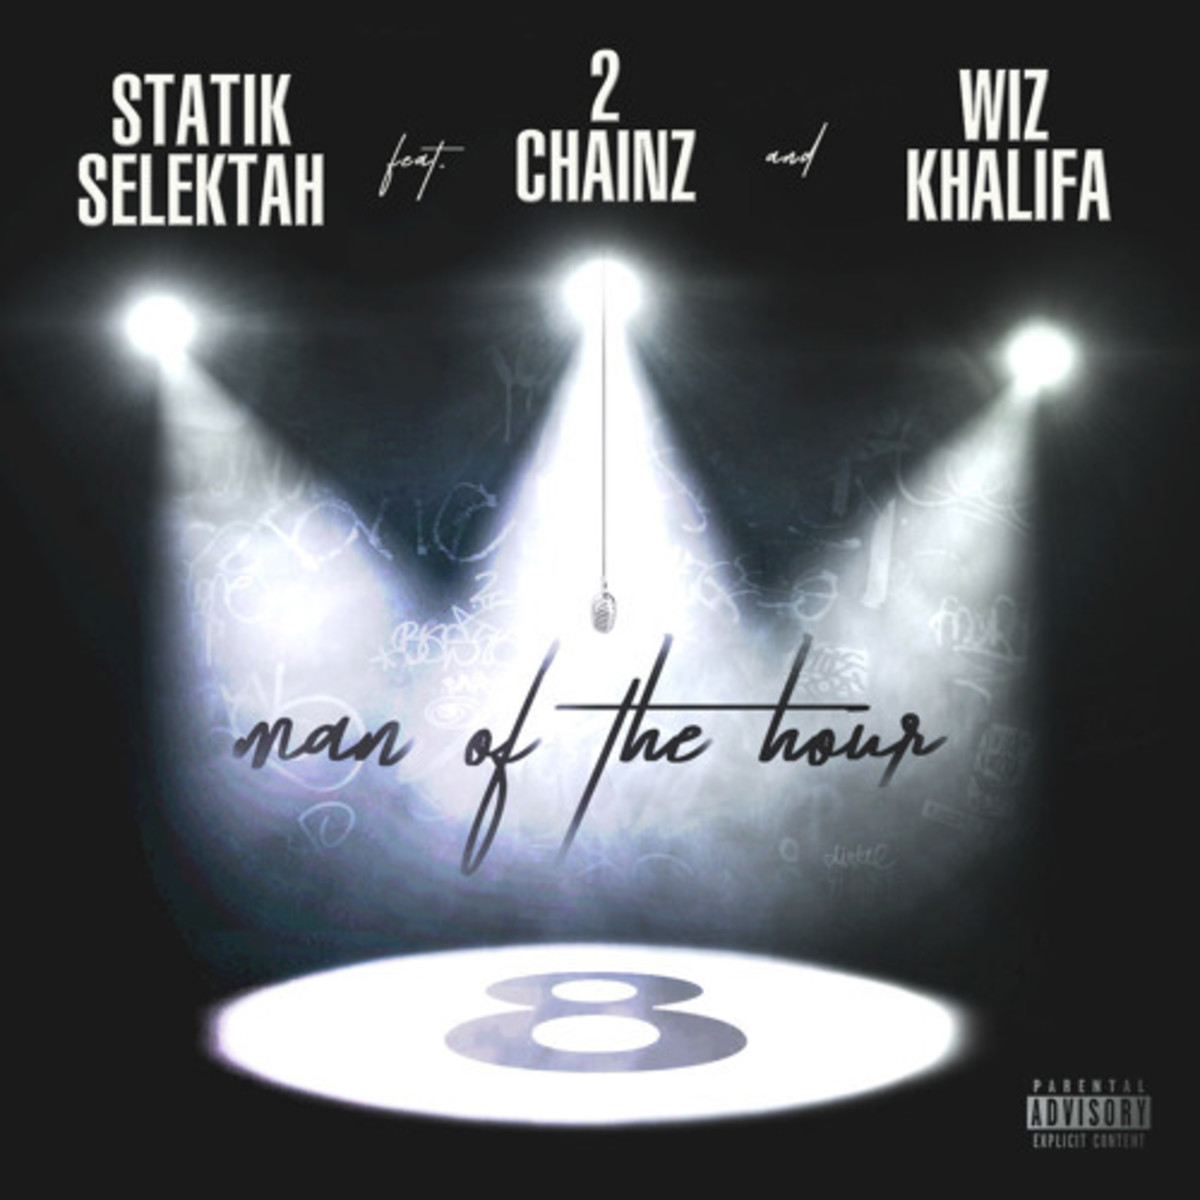 statik-selektah-man-of-the-year.jpg